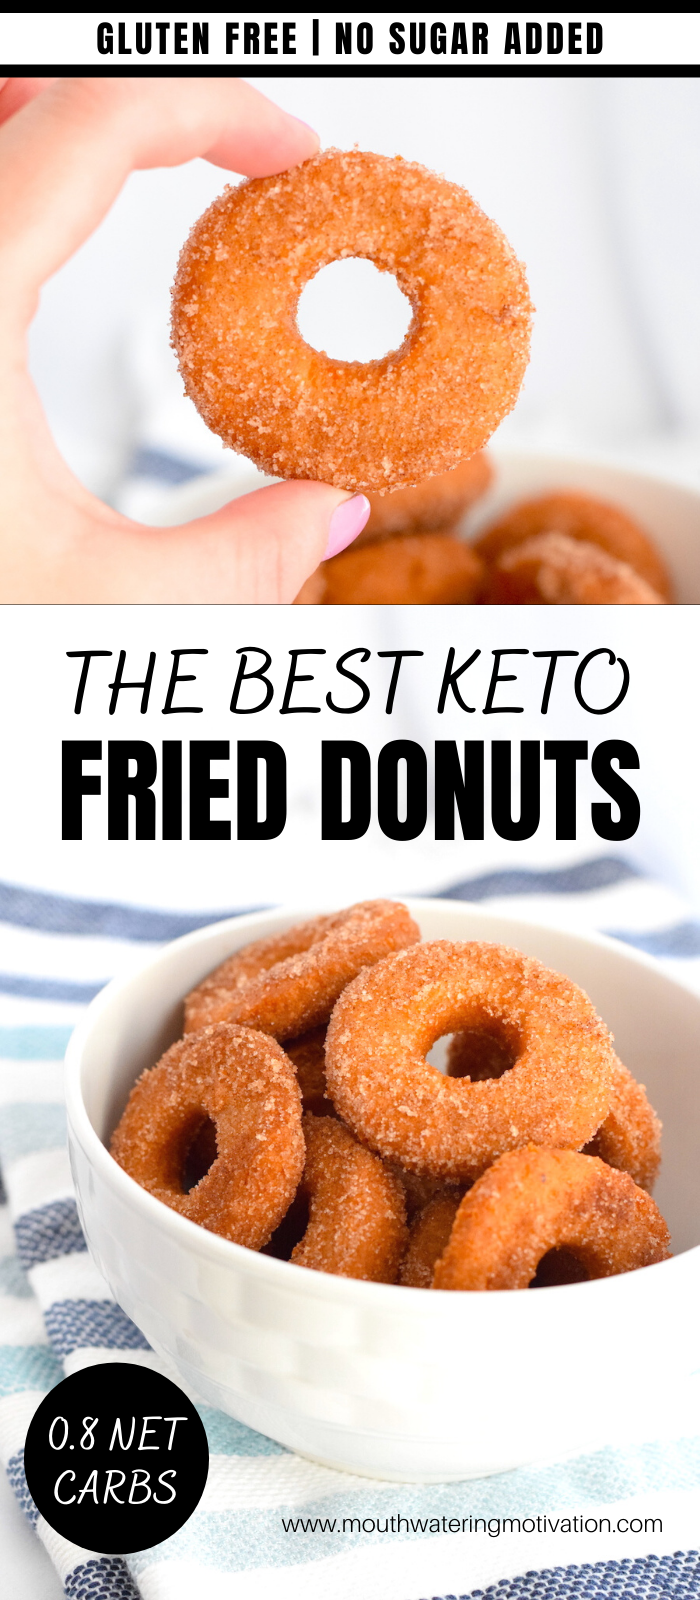 the best keto fried donuts